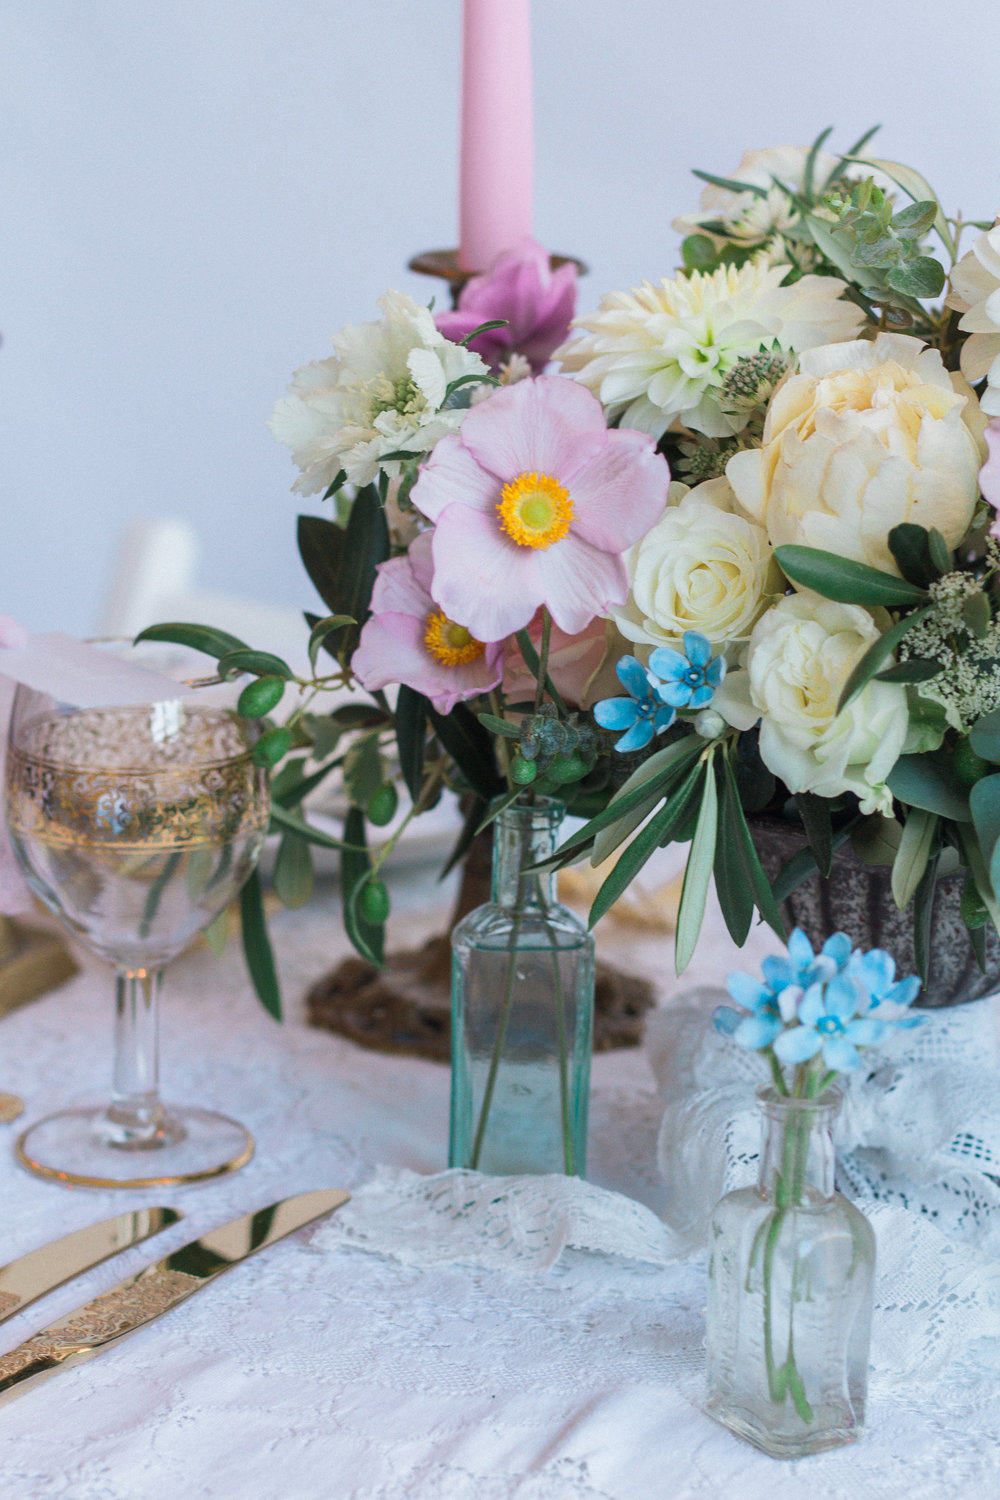 Vintage Amy Wedding Styling-Vintage Luxe Wedding Table Styling-Romantic Vintage Wedding London